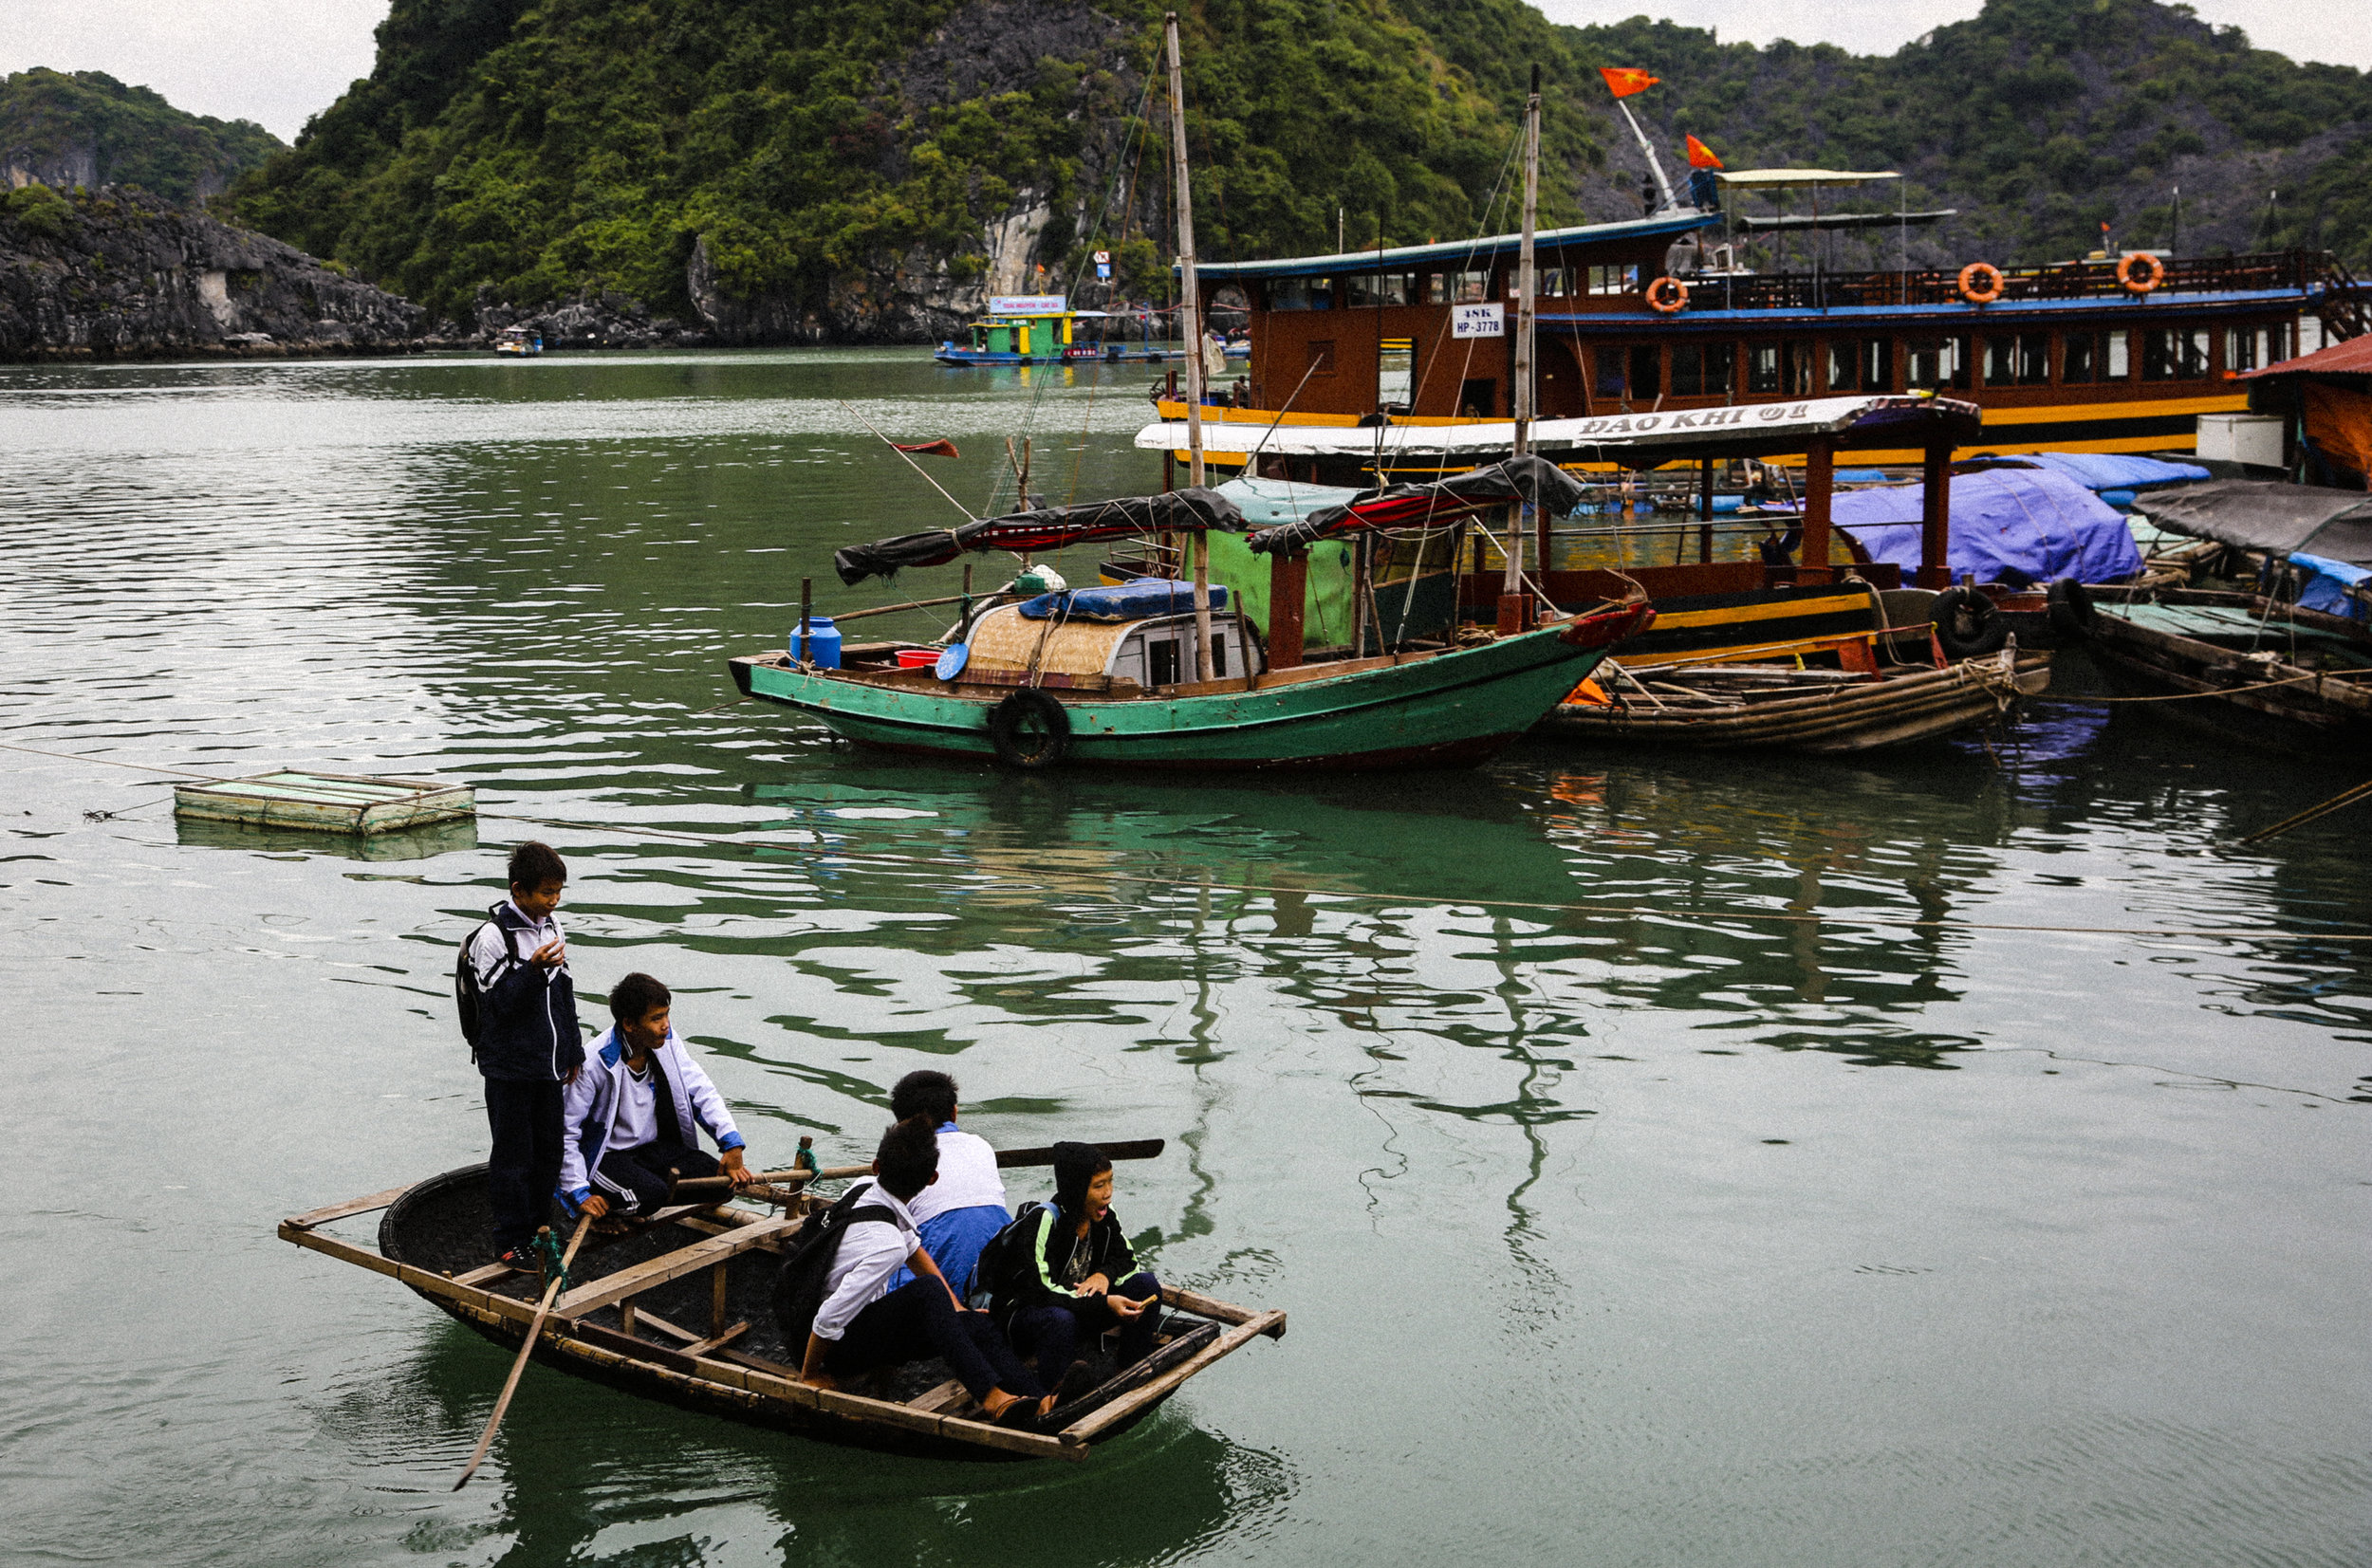 Children venture home from school on this hand made boat in Halong Bay.